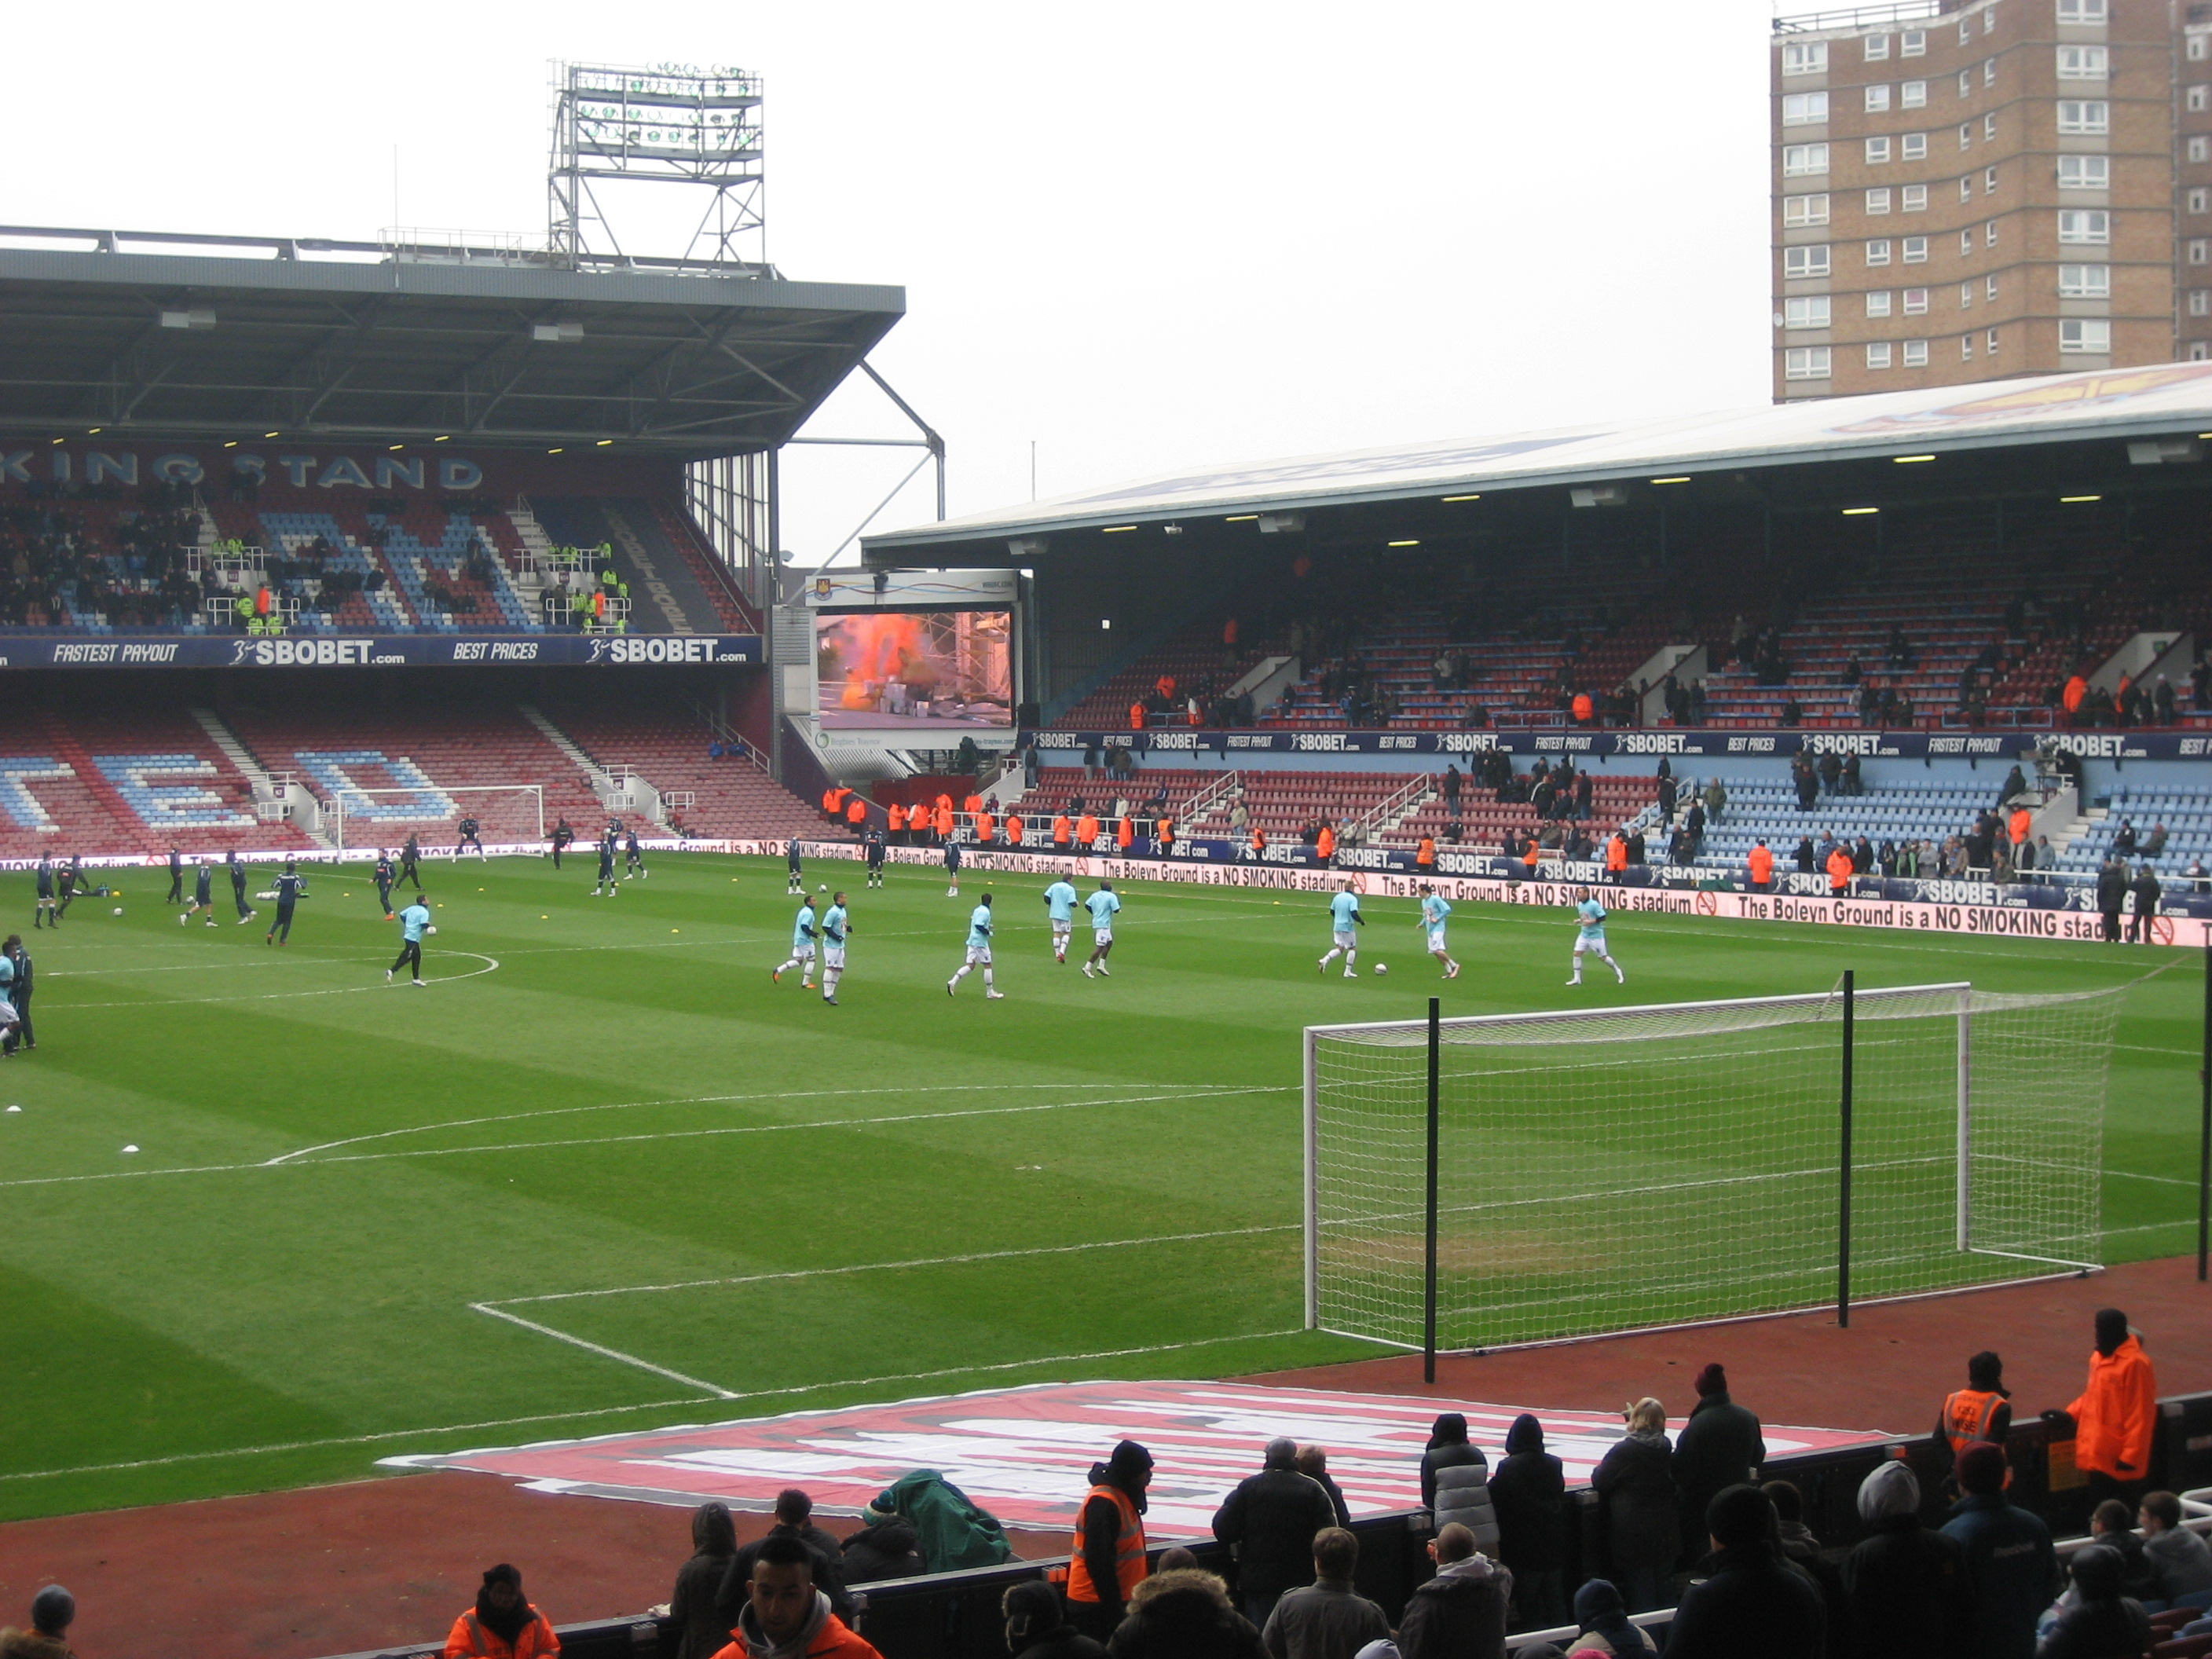 Millwall warming up in front of the East Stand